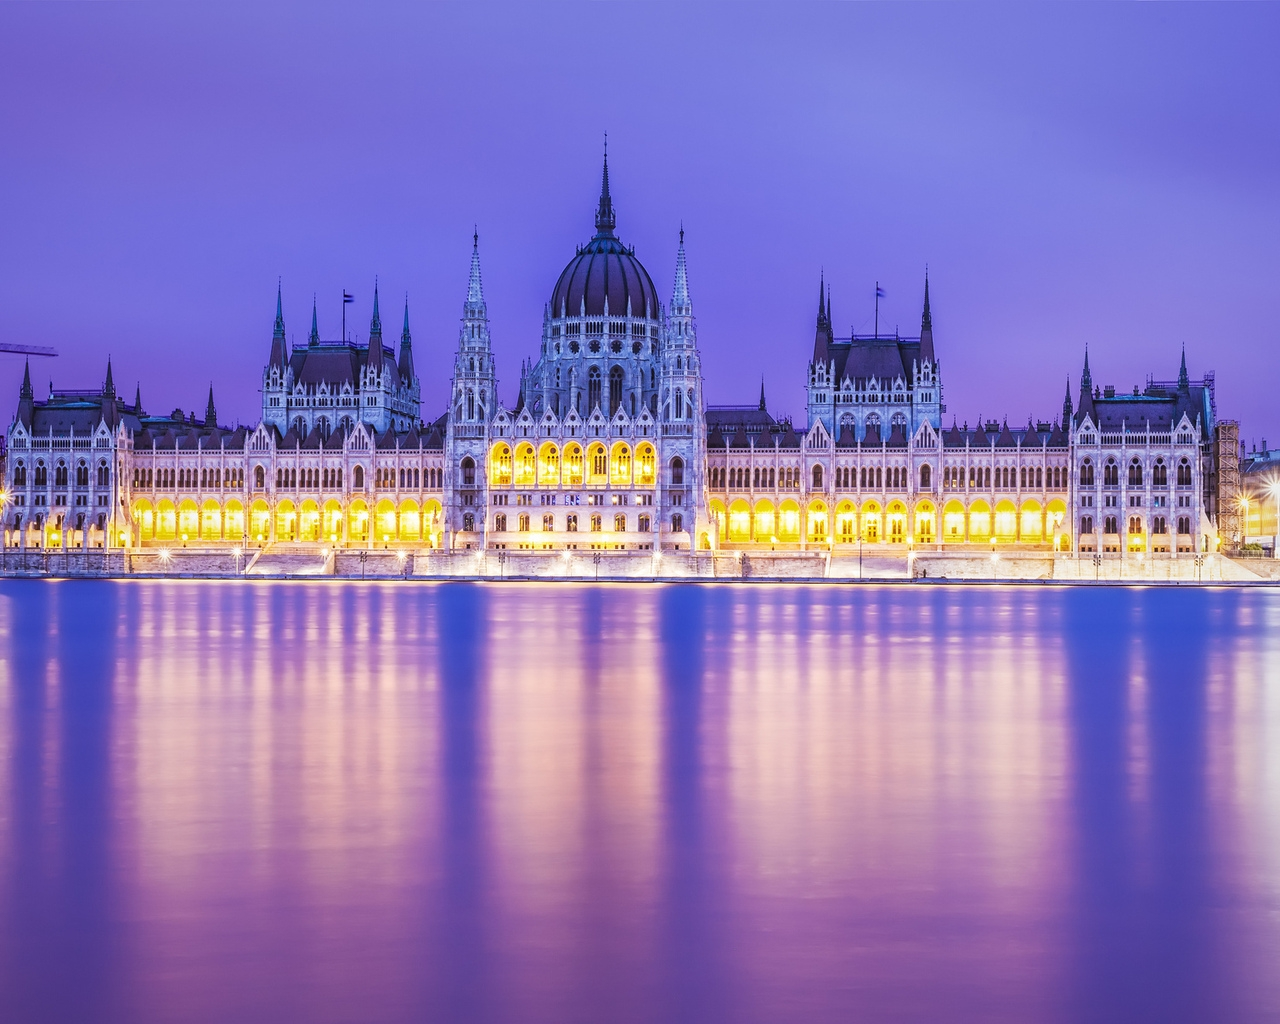 Budapest Parliament Building for 1280 x 1024 resolution